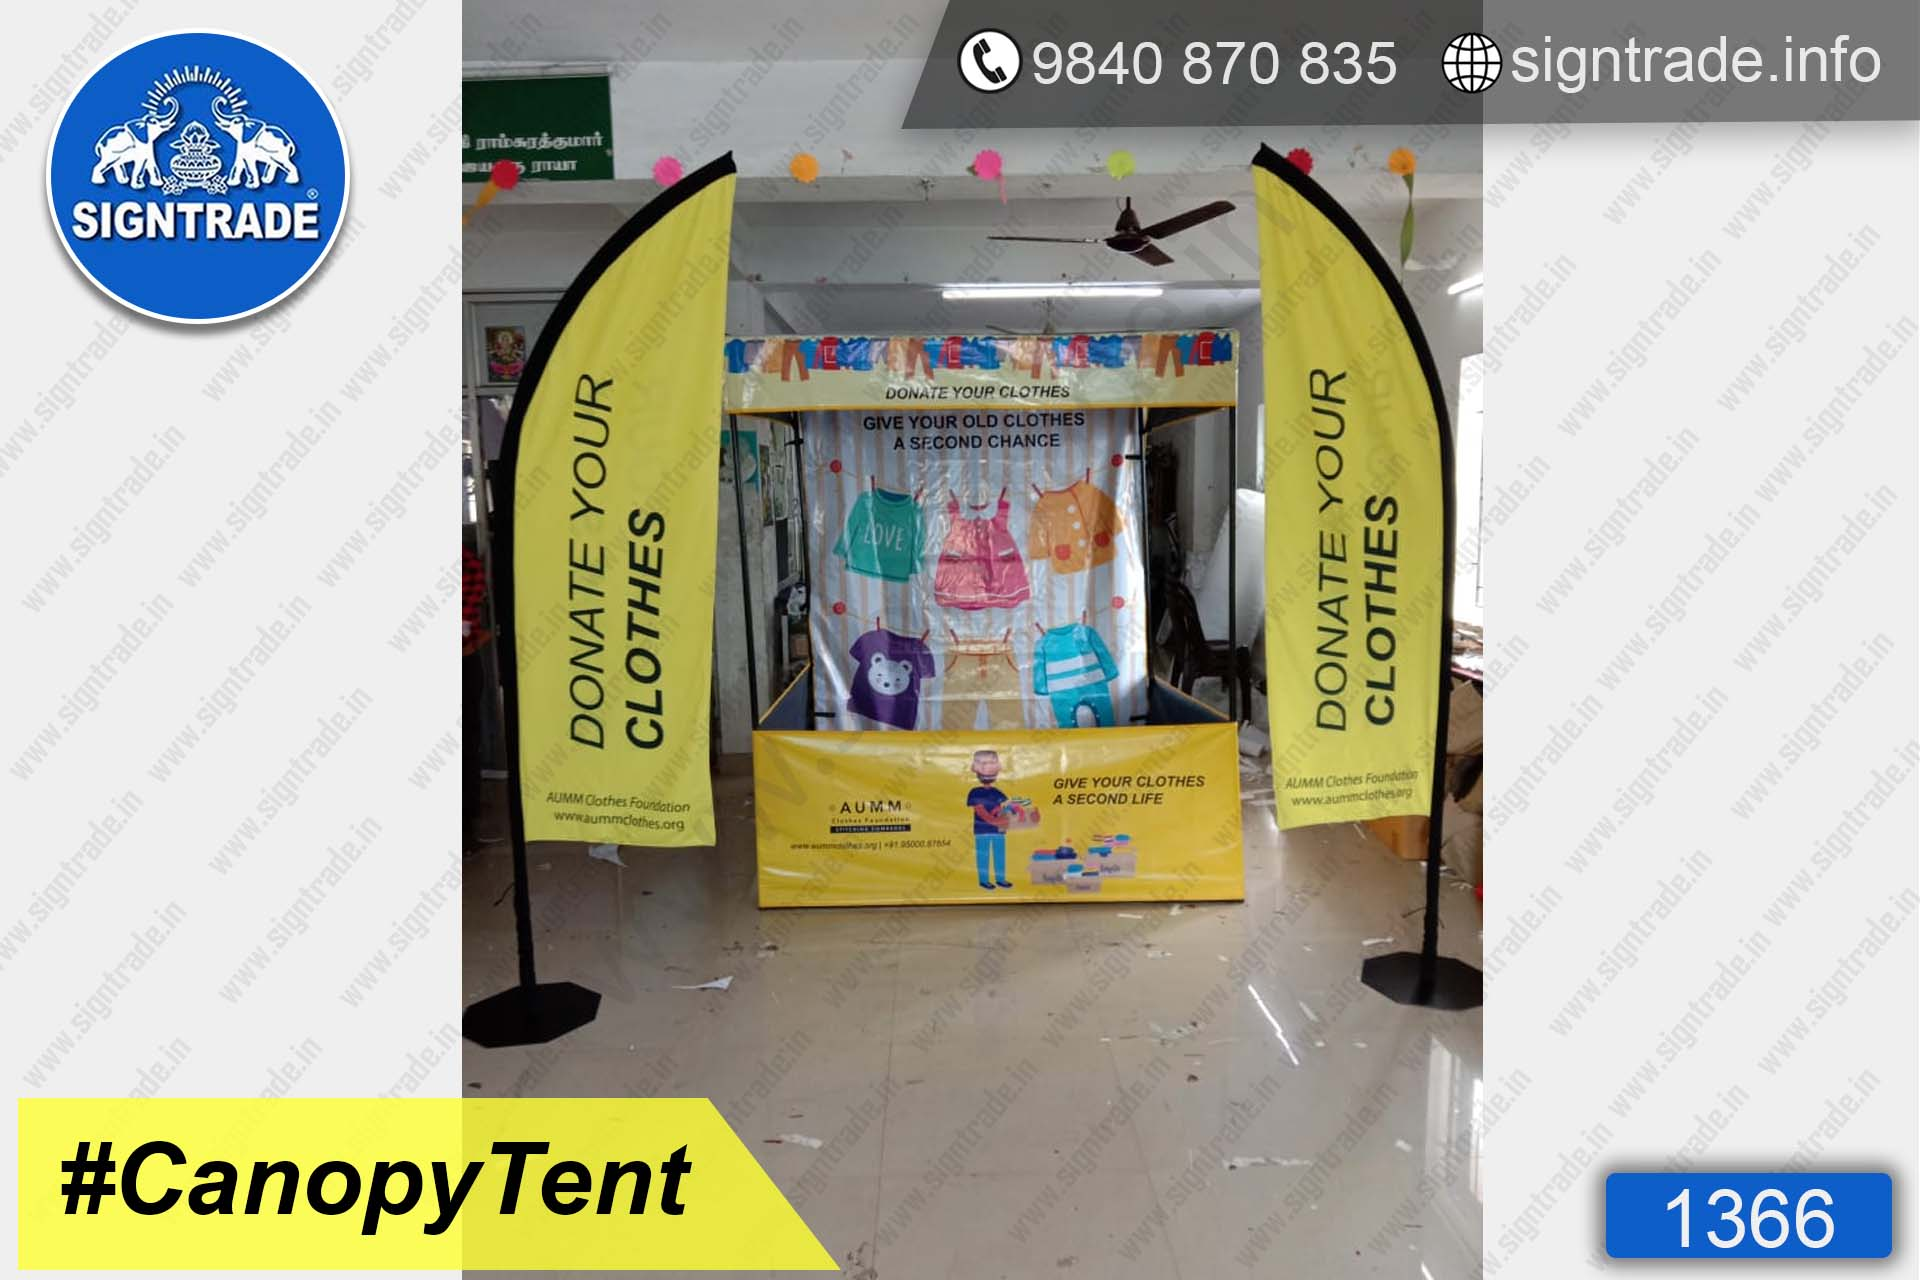 Donate Your Clothes - 1366, Canopy tent, Flat roof tent, Promo tent, Promotional tent, Advertising tent, Promo Flag